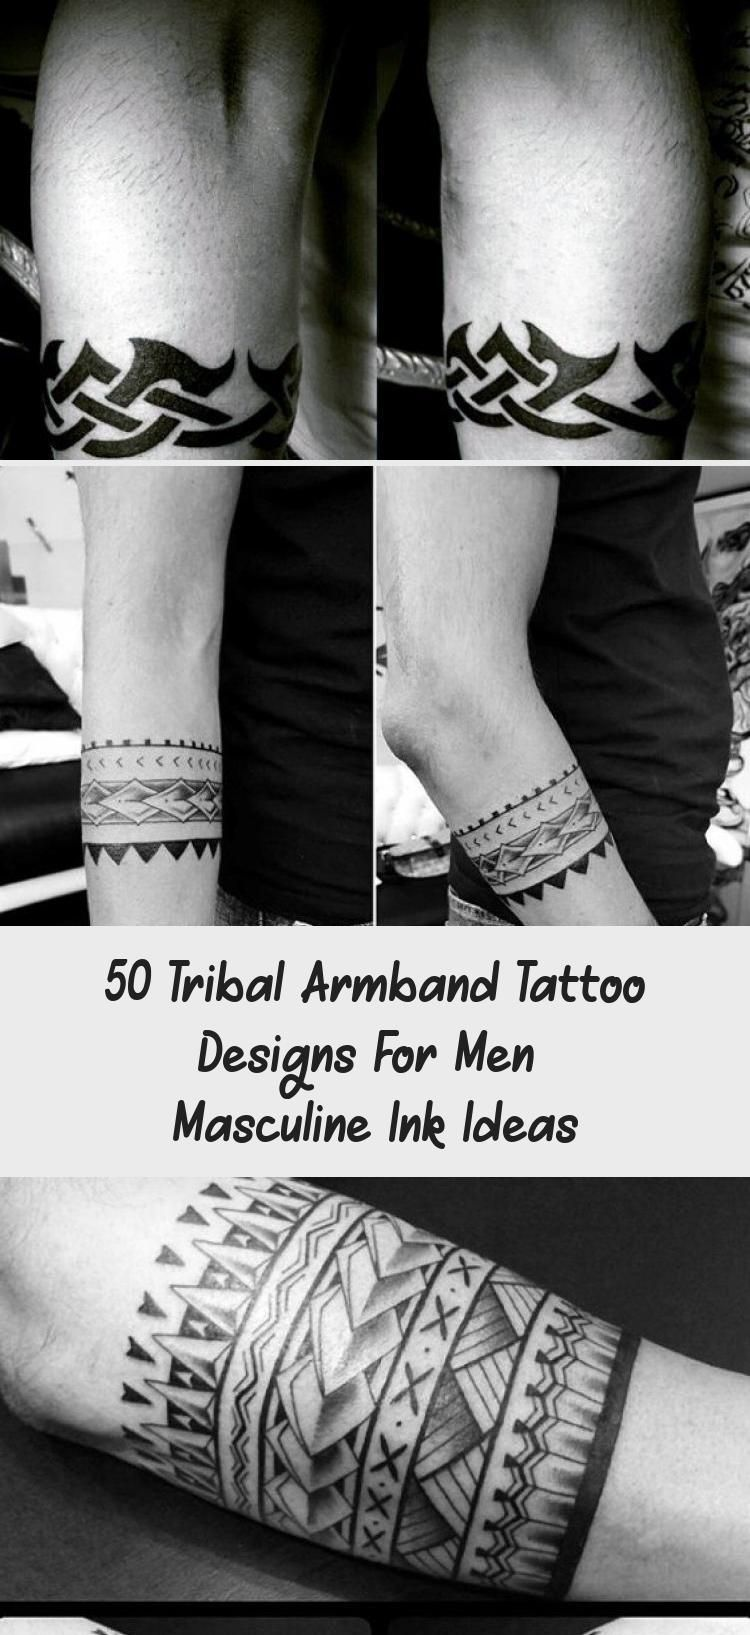 50 Tribal Armband Tattoo Designs For Men Masculine Ink Ideas Tattoos And Body Art In 2020 Tribal Armband Tattoo Arm Band Tattoo Tribal Armband